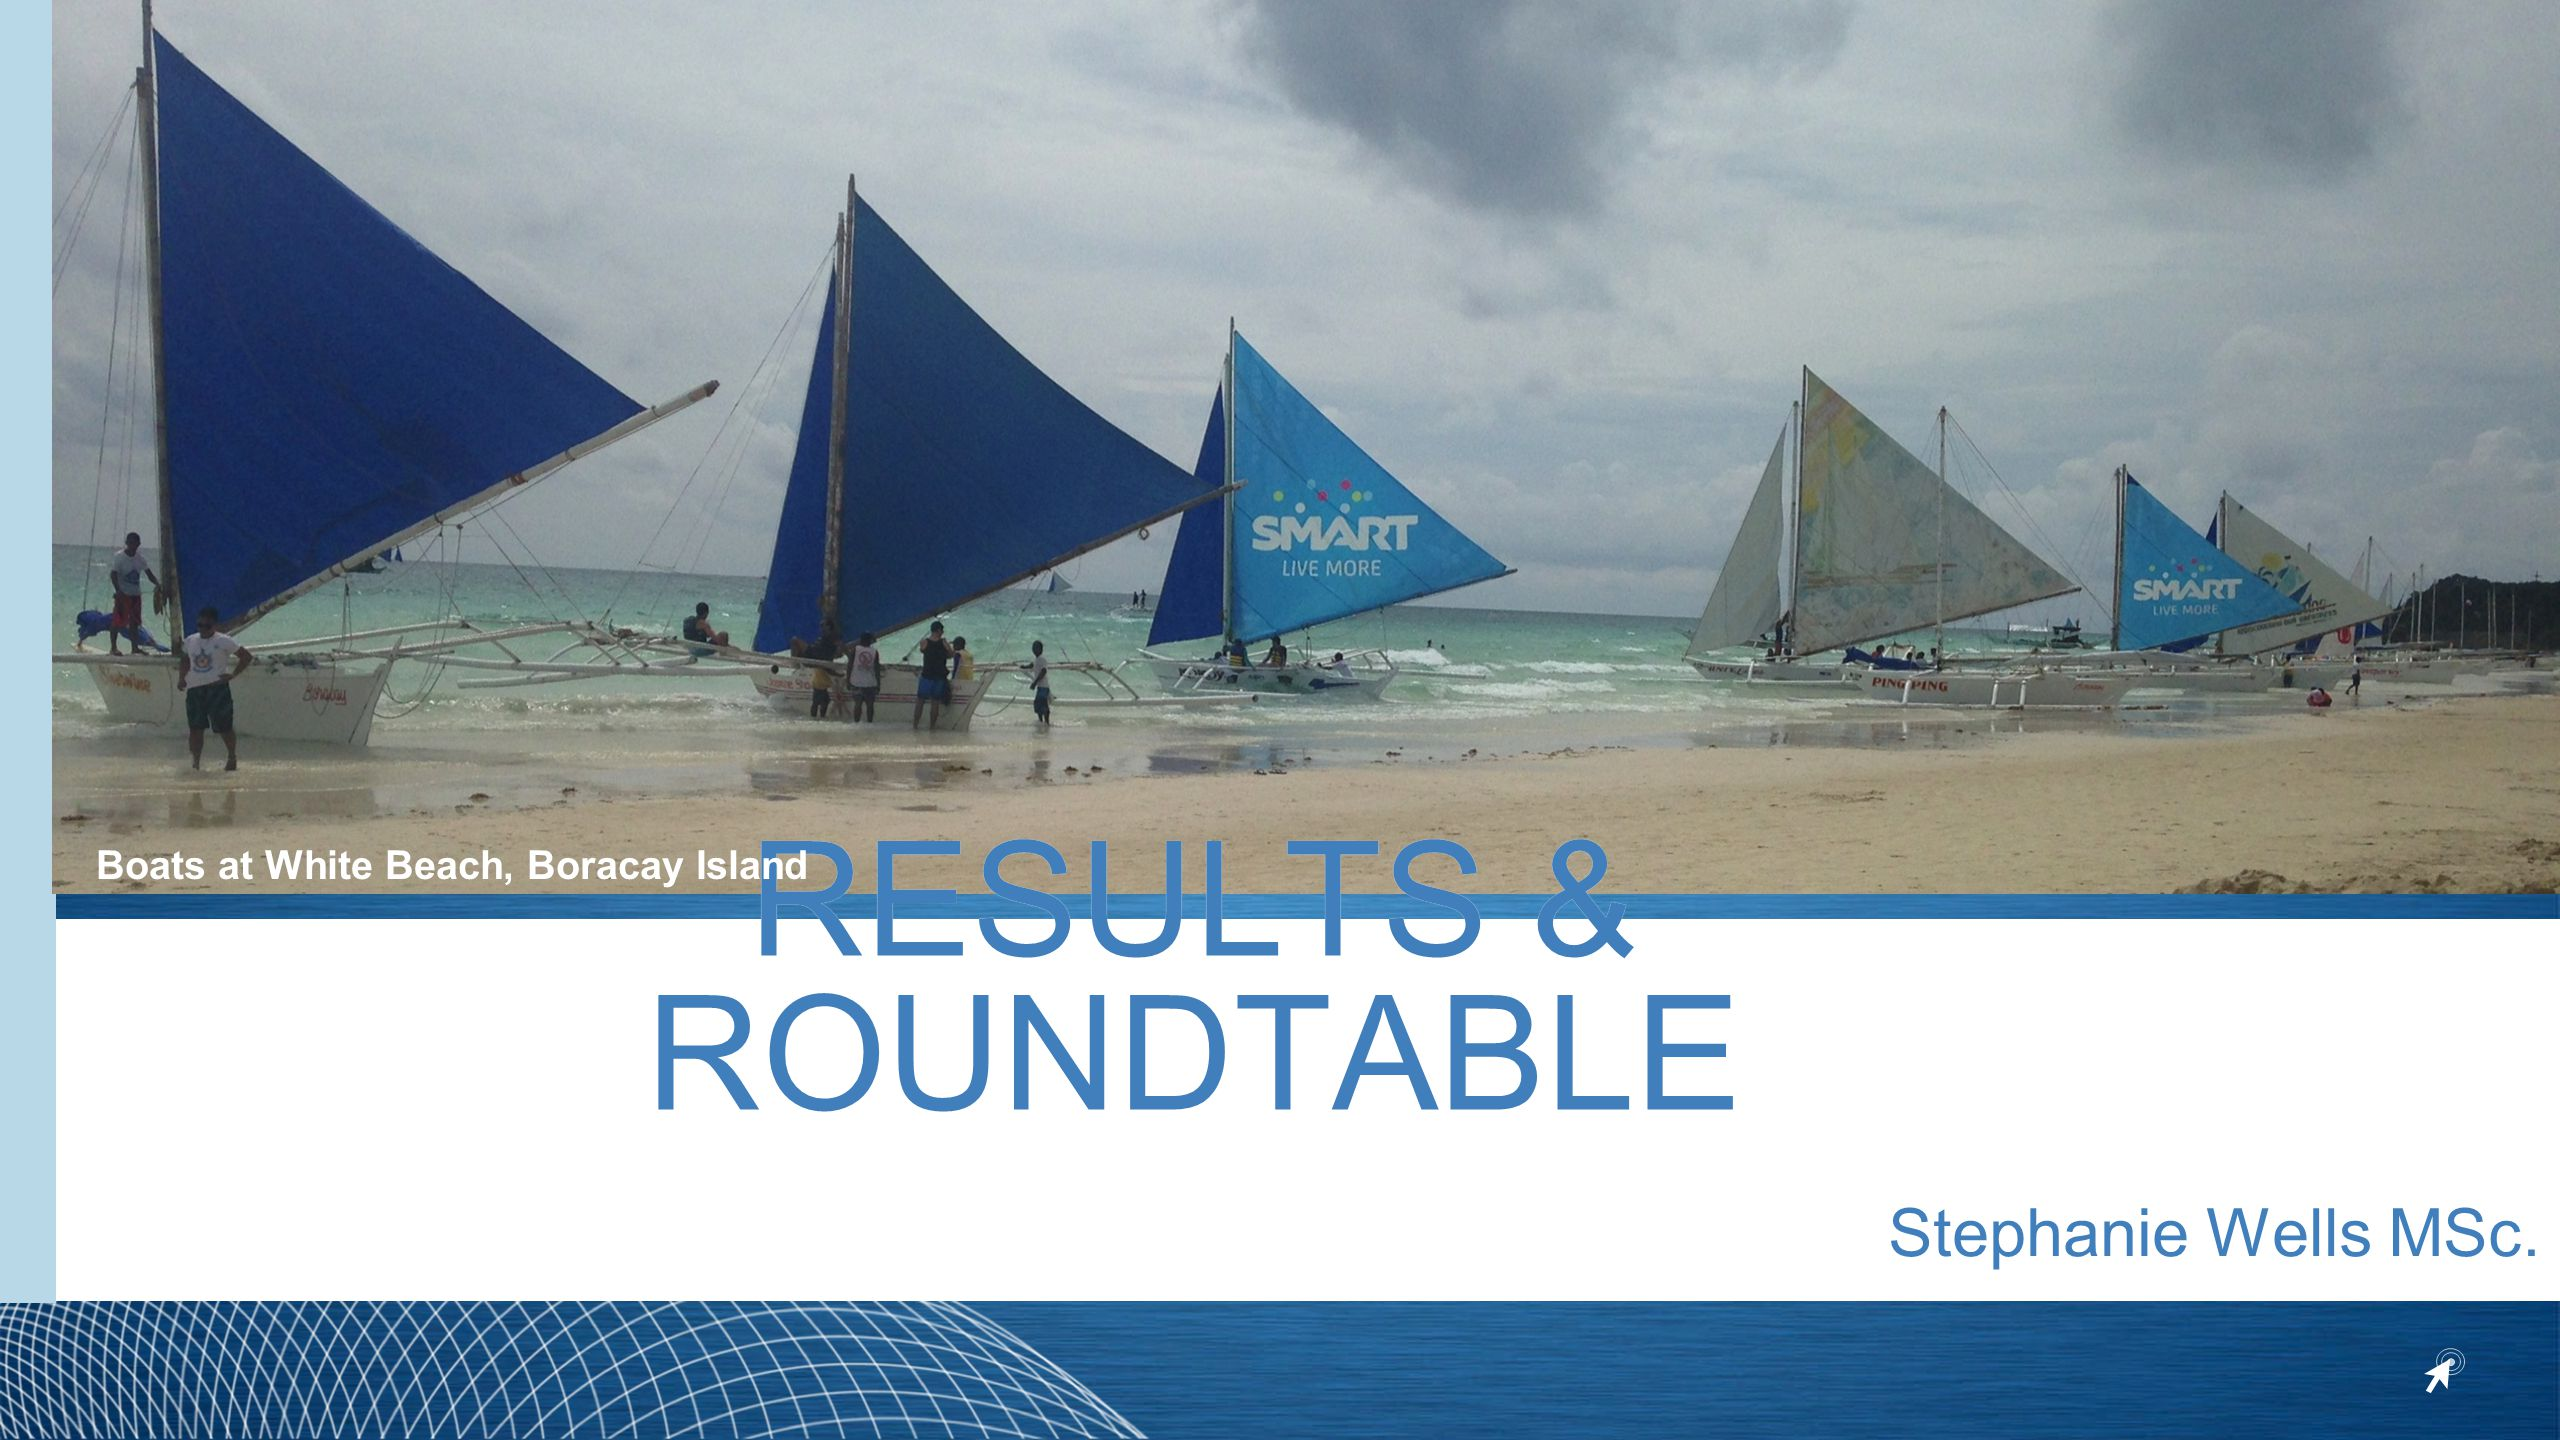 RESULTS & ROUNDTABLE Stephanie Wells MSc. Boats at White Beach, Boracay Island